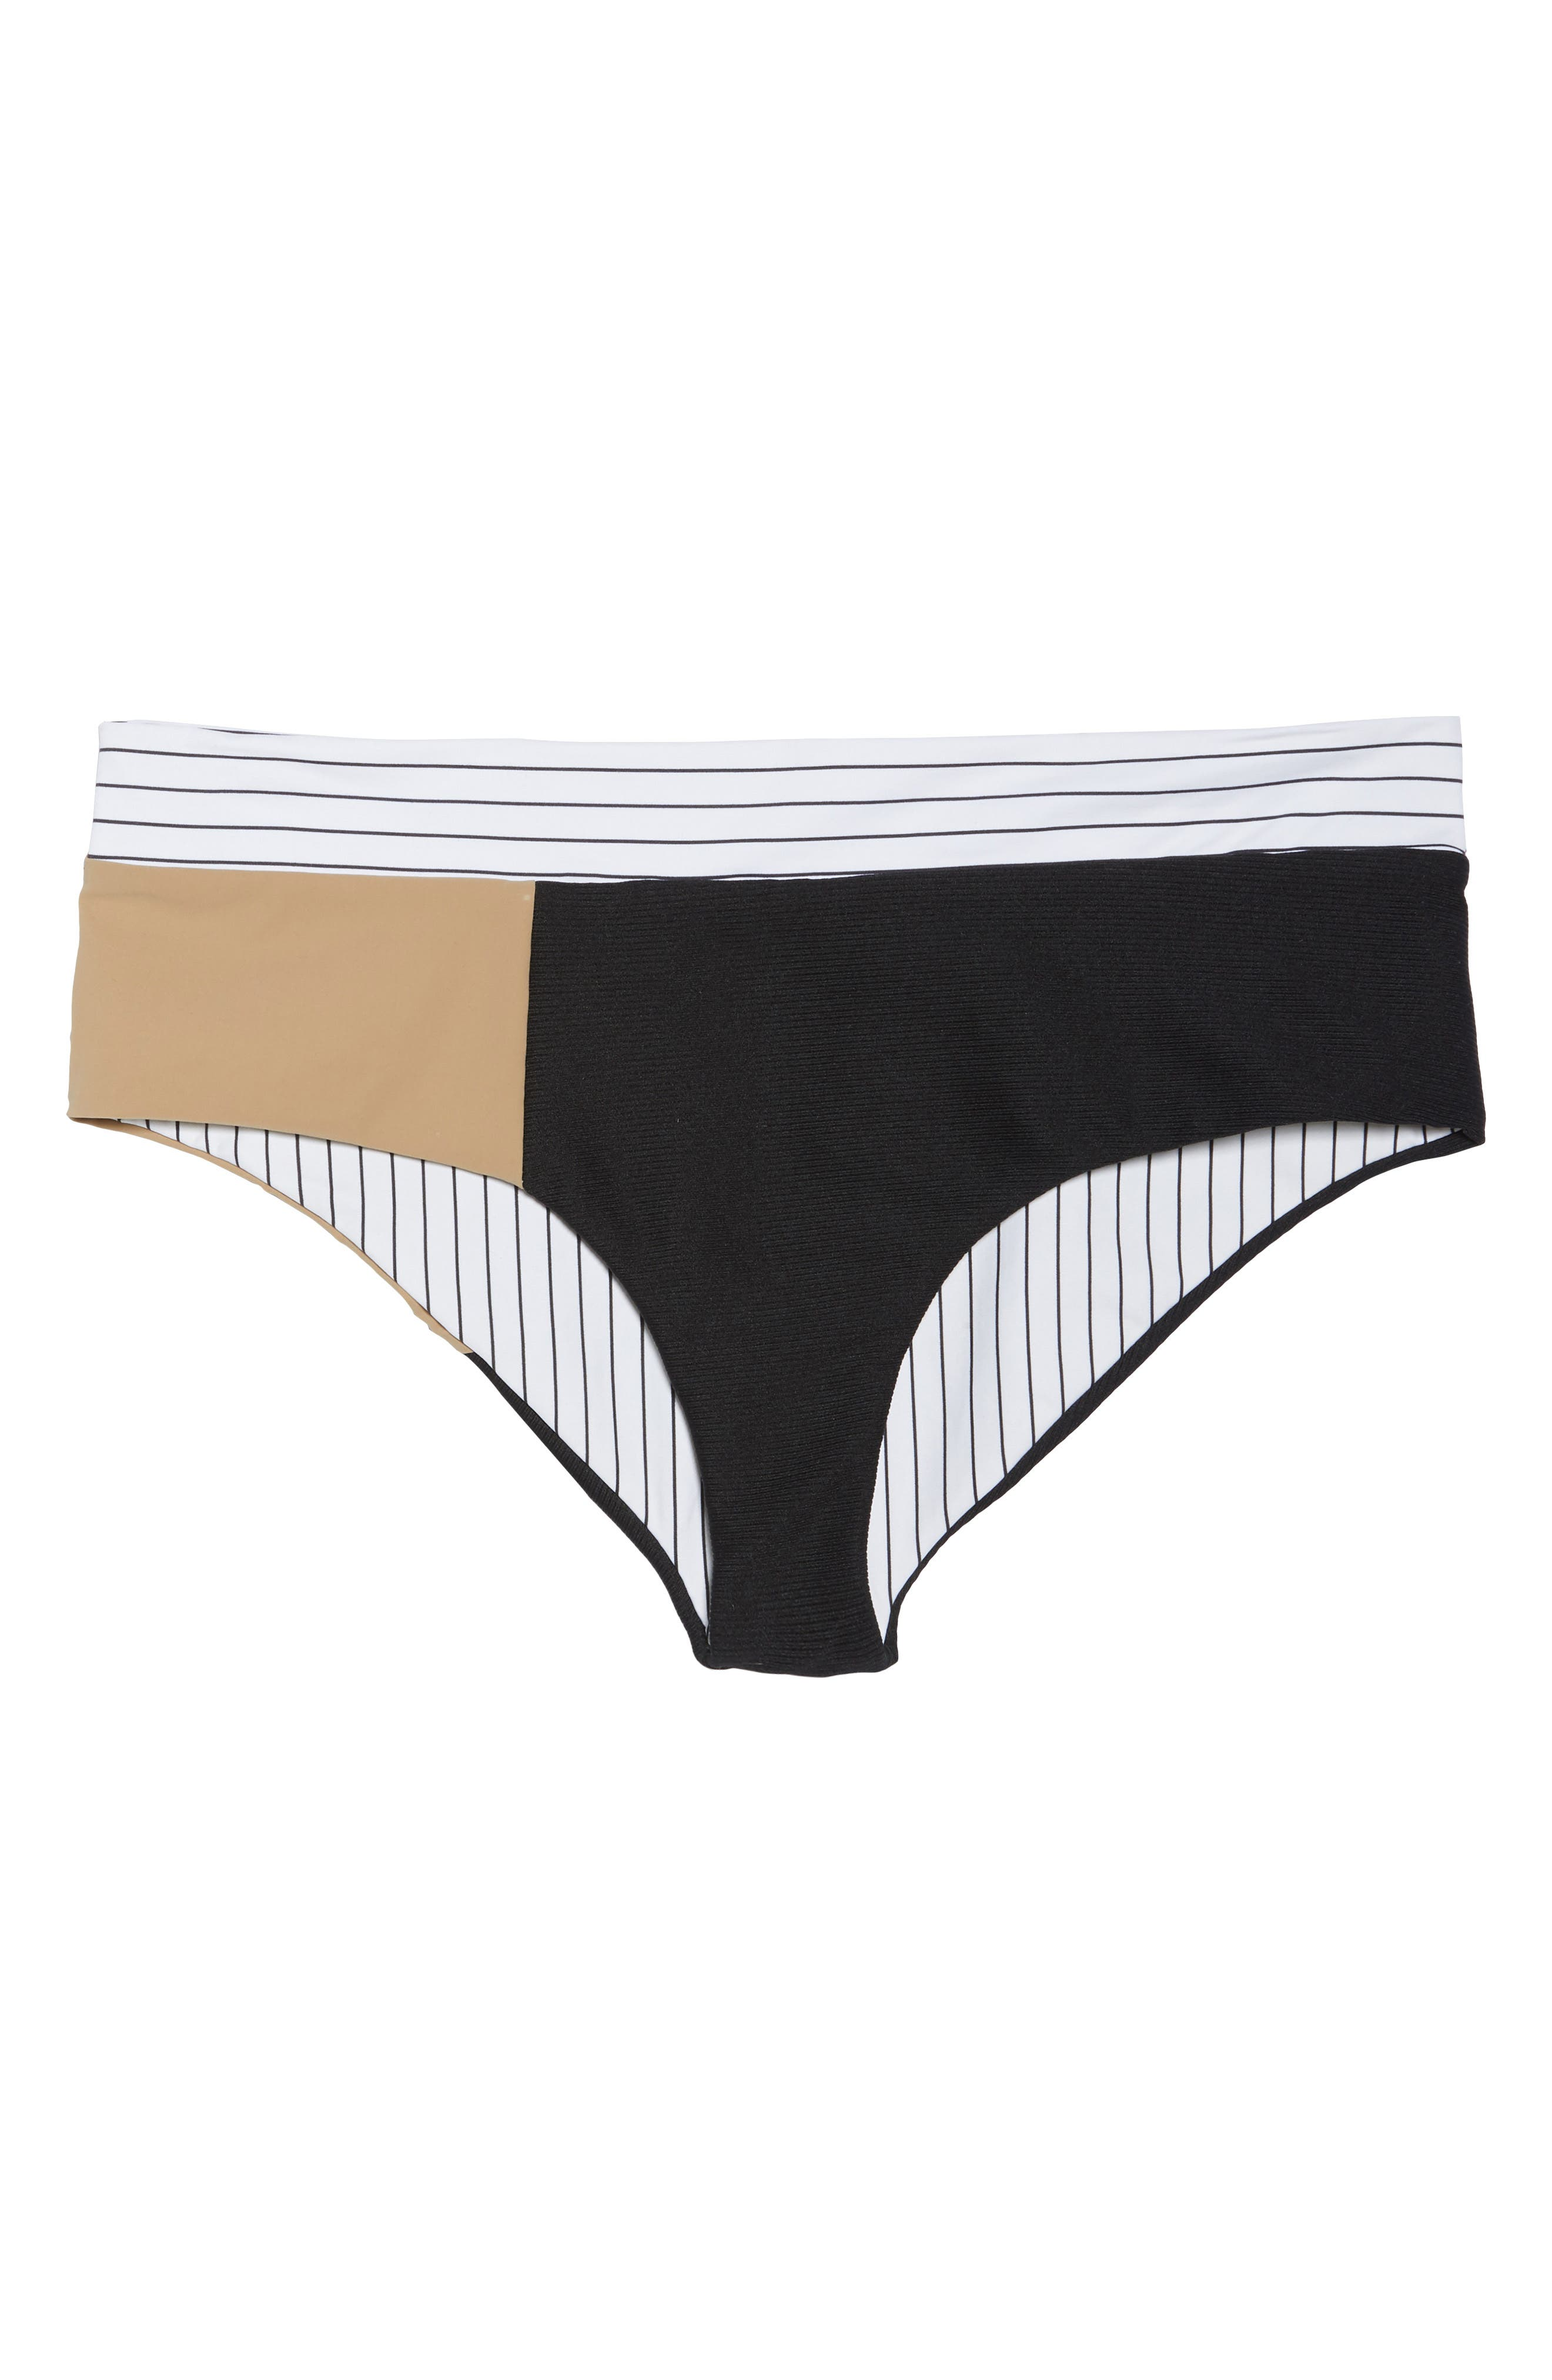 Makaveli Bikini Bottoms,                             Alternate thumbnail 7, color,